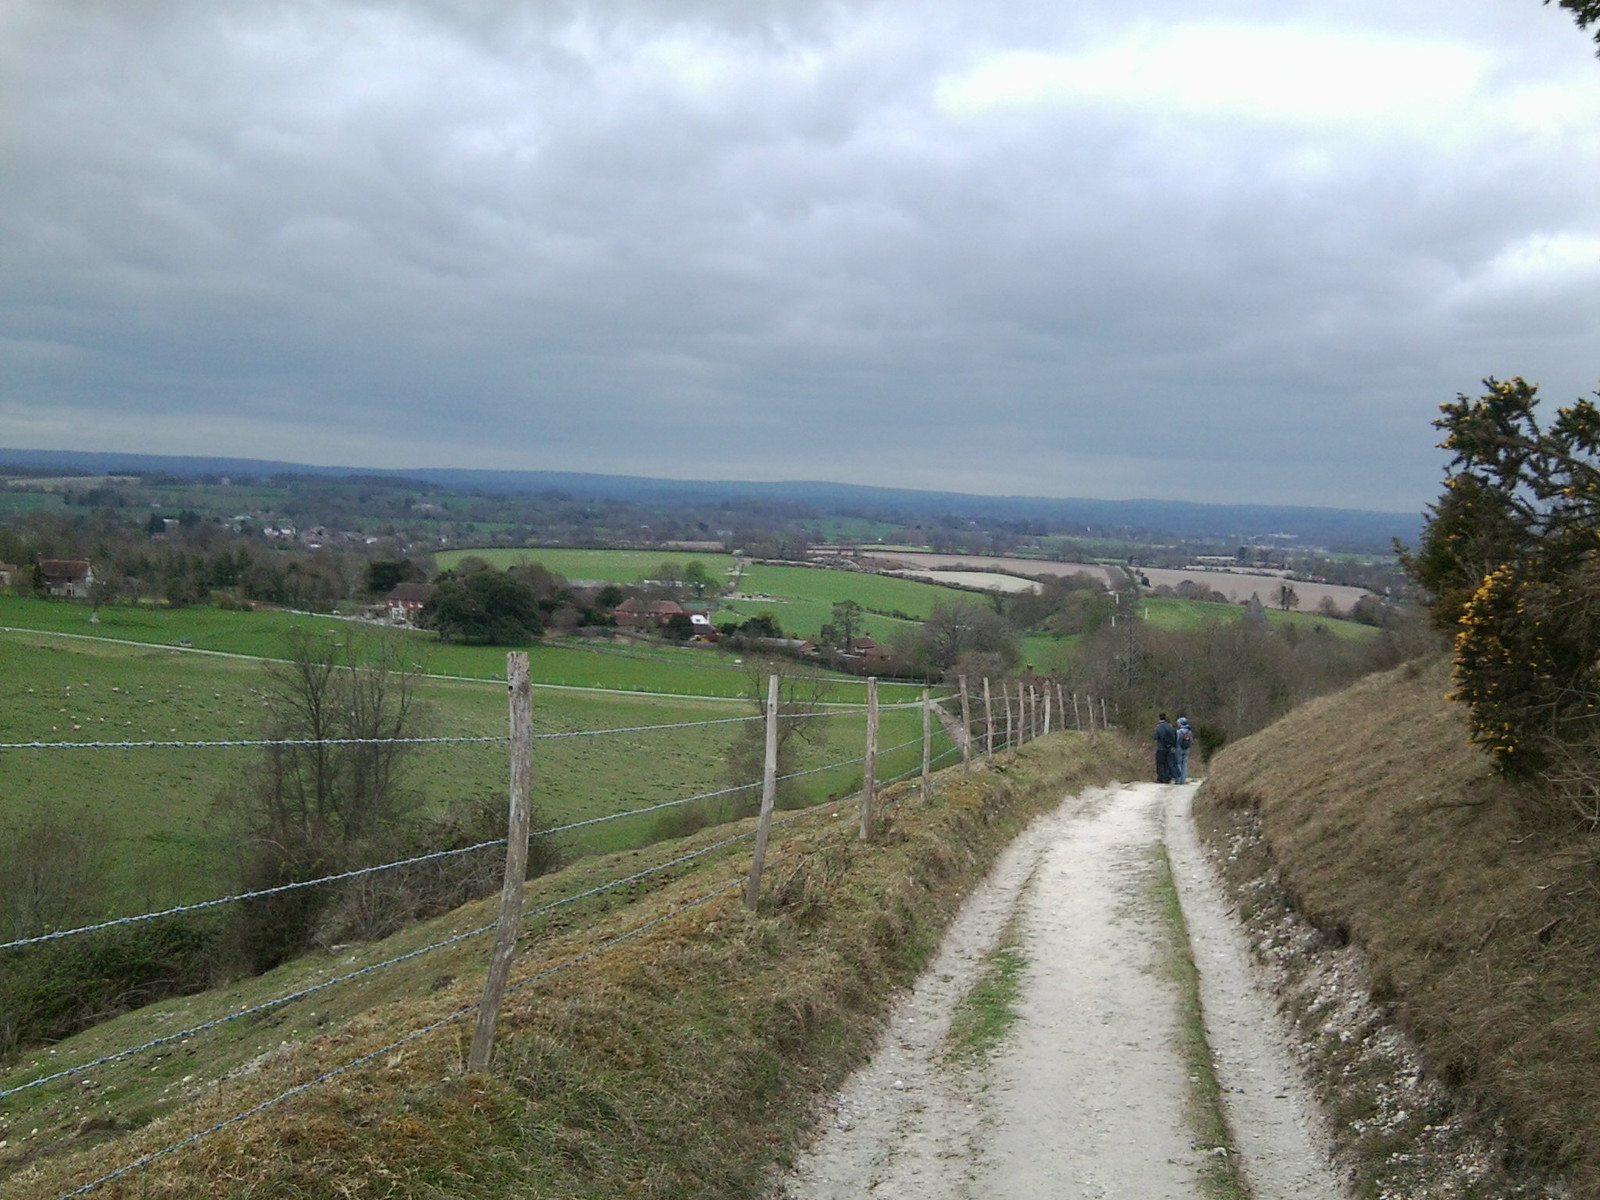 Coming down. Hassocks to Lewes